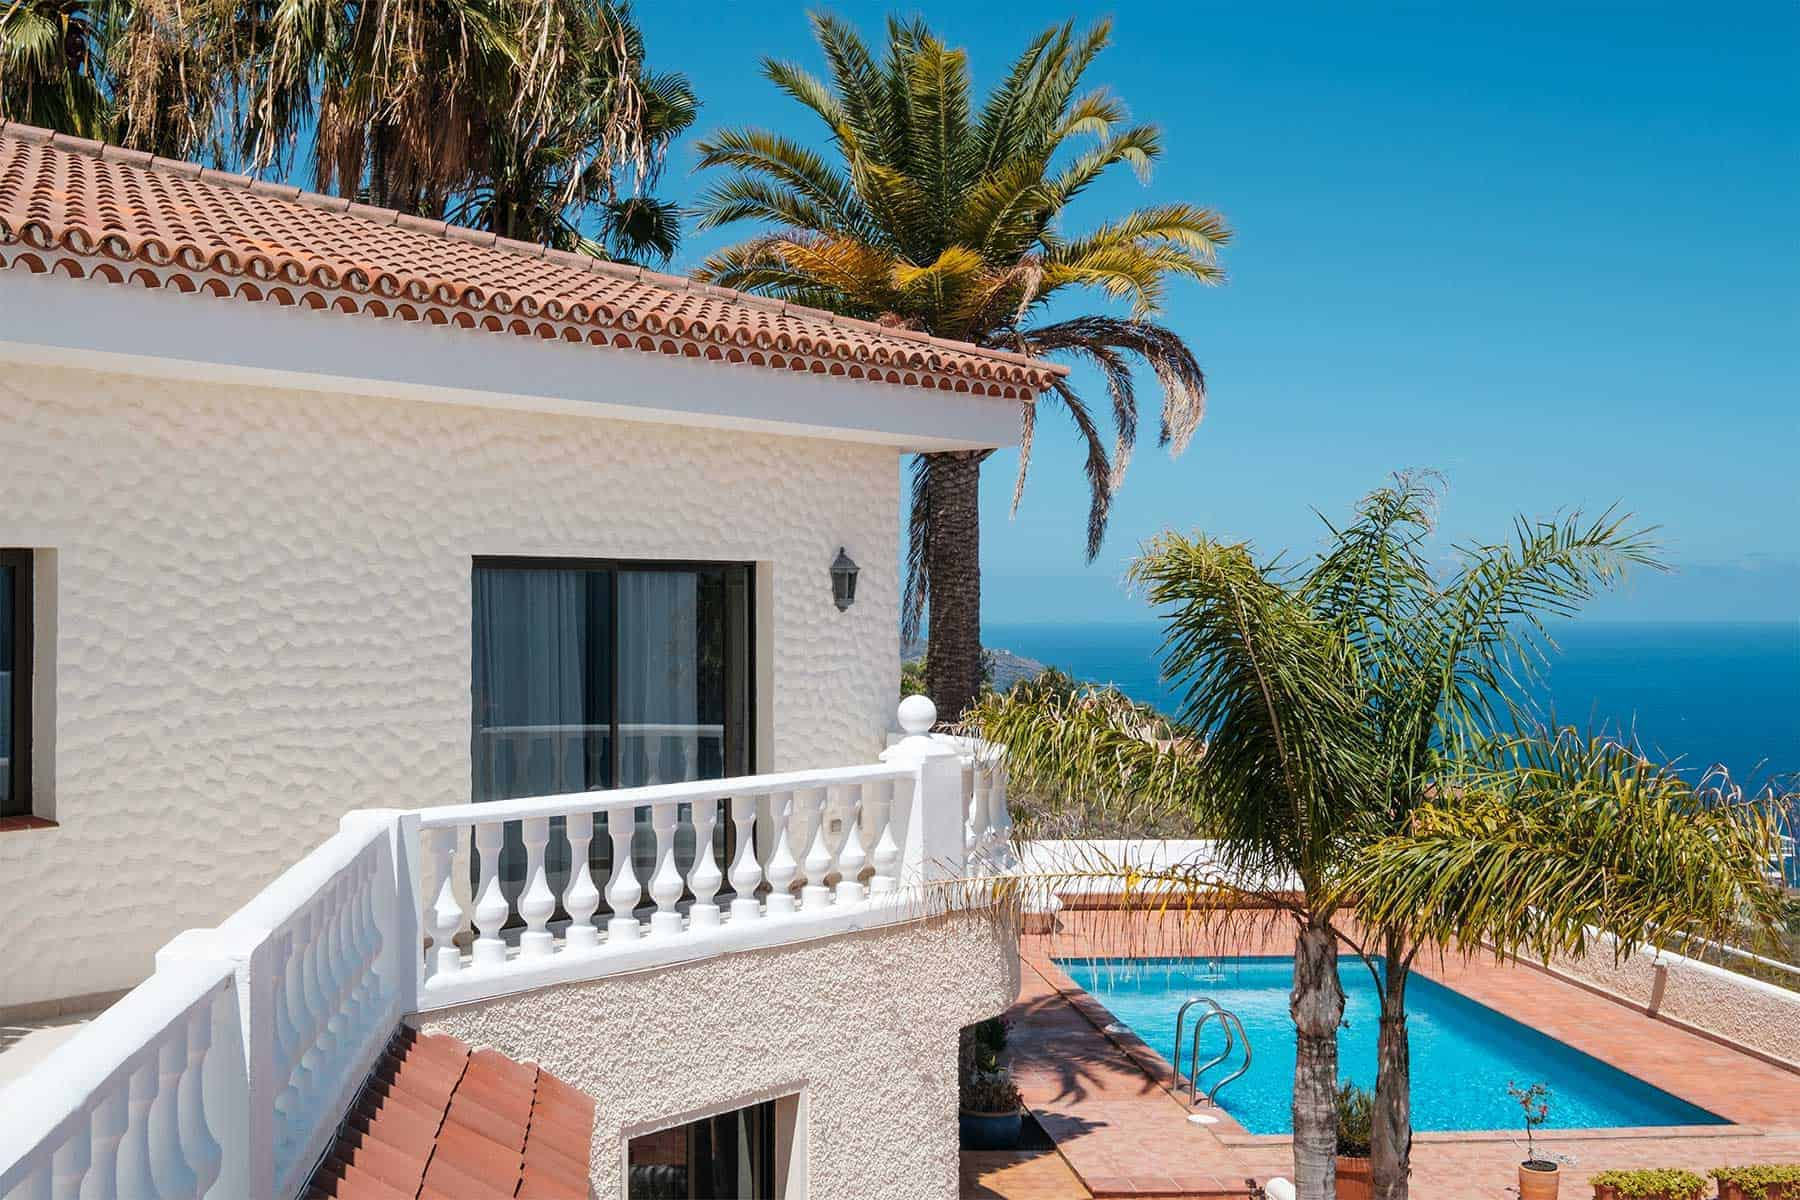 Renting Property In Spain: The Ins And Outs Of The Spanish Rental Process